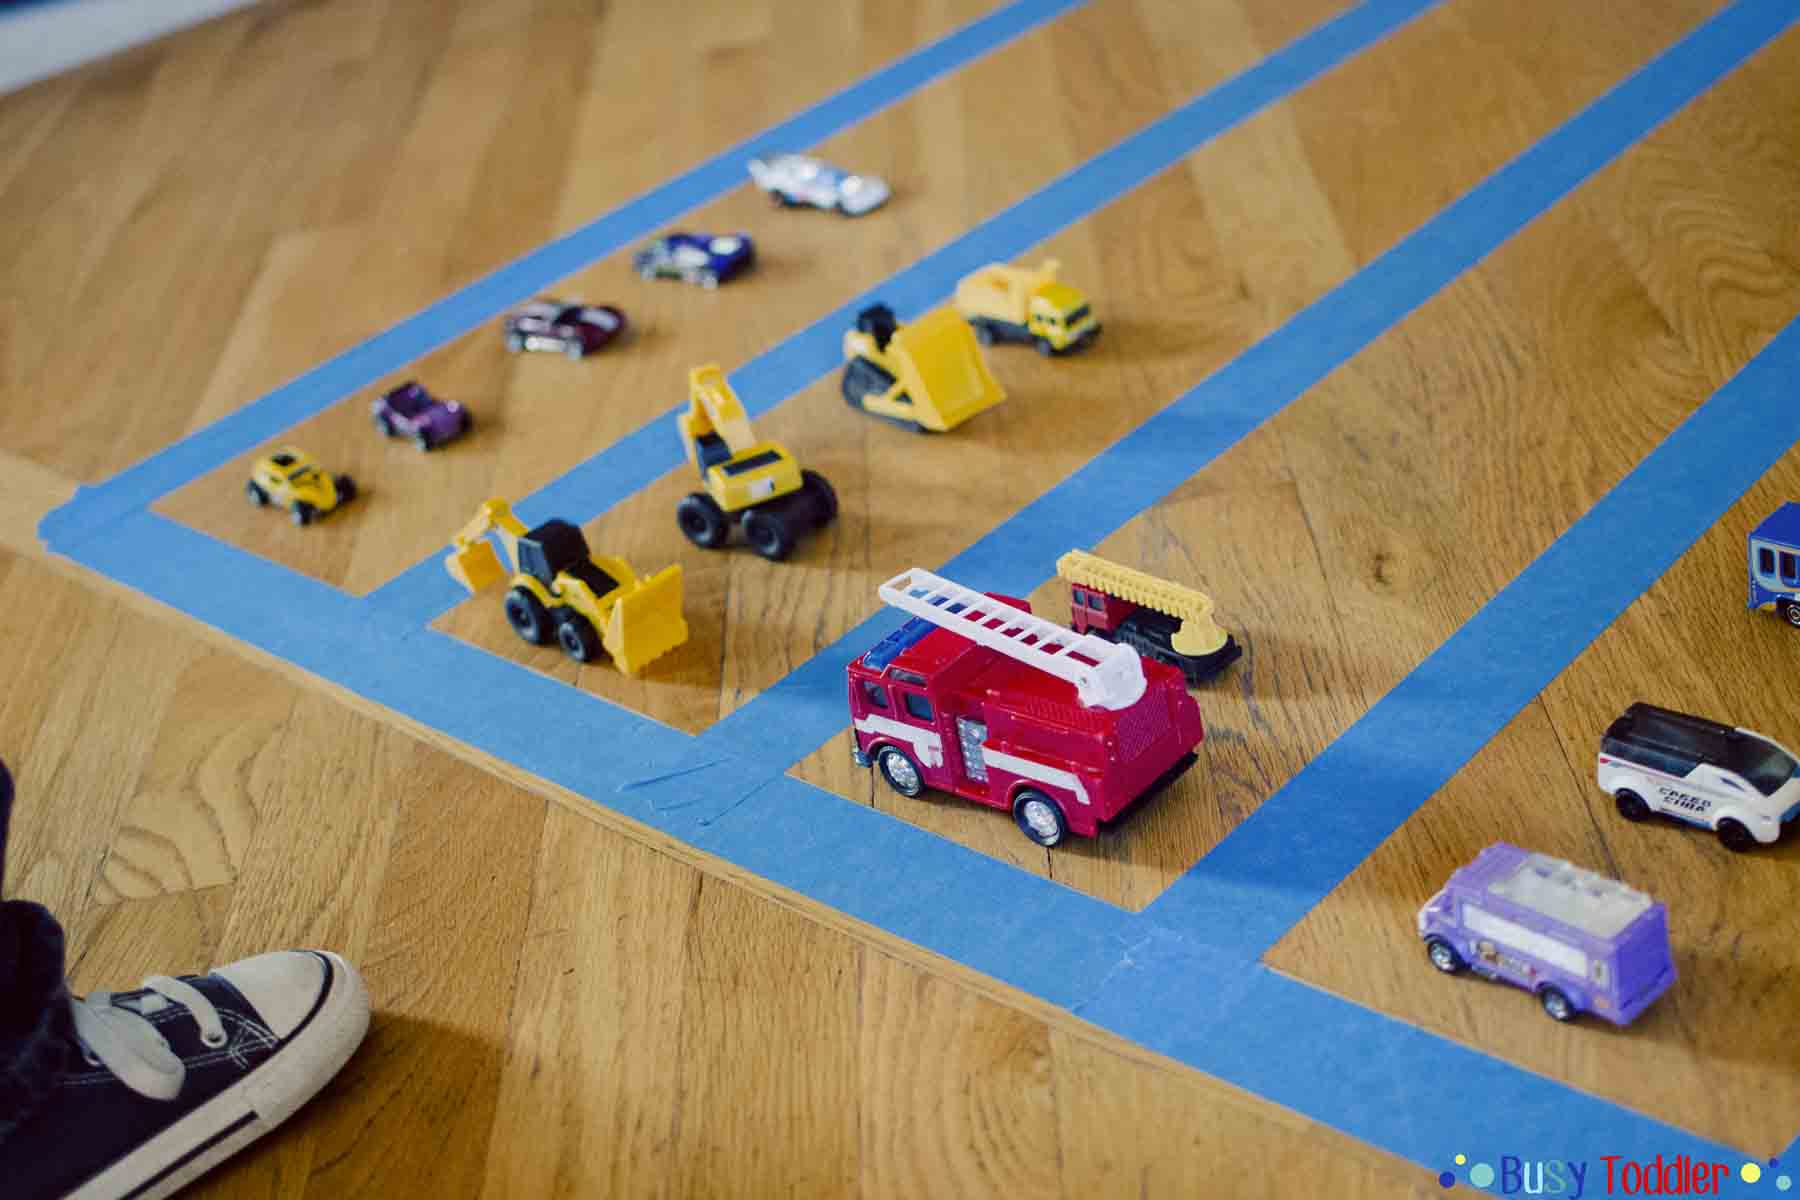 SORTING ACTIVITIES: Using toy cards to create a simple toddler math activity